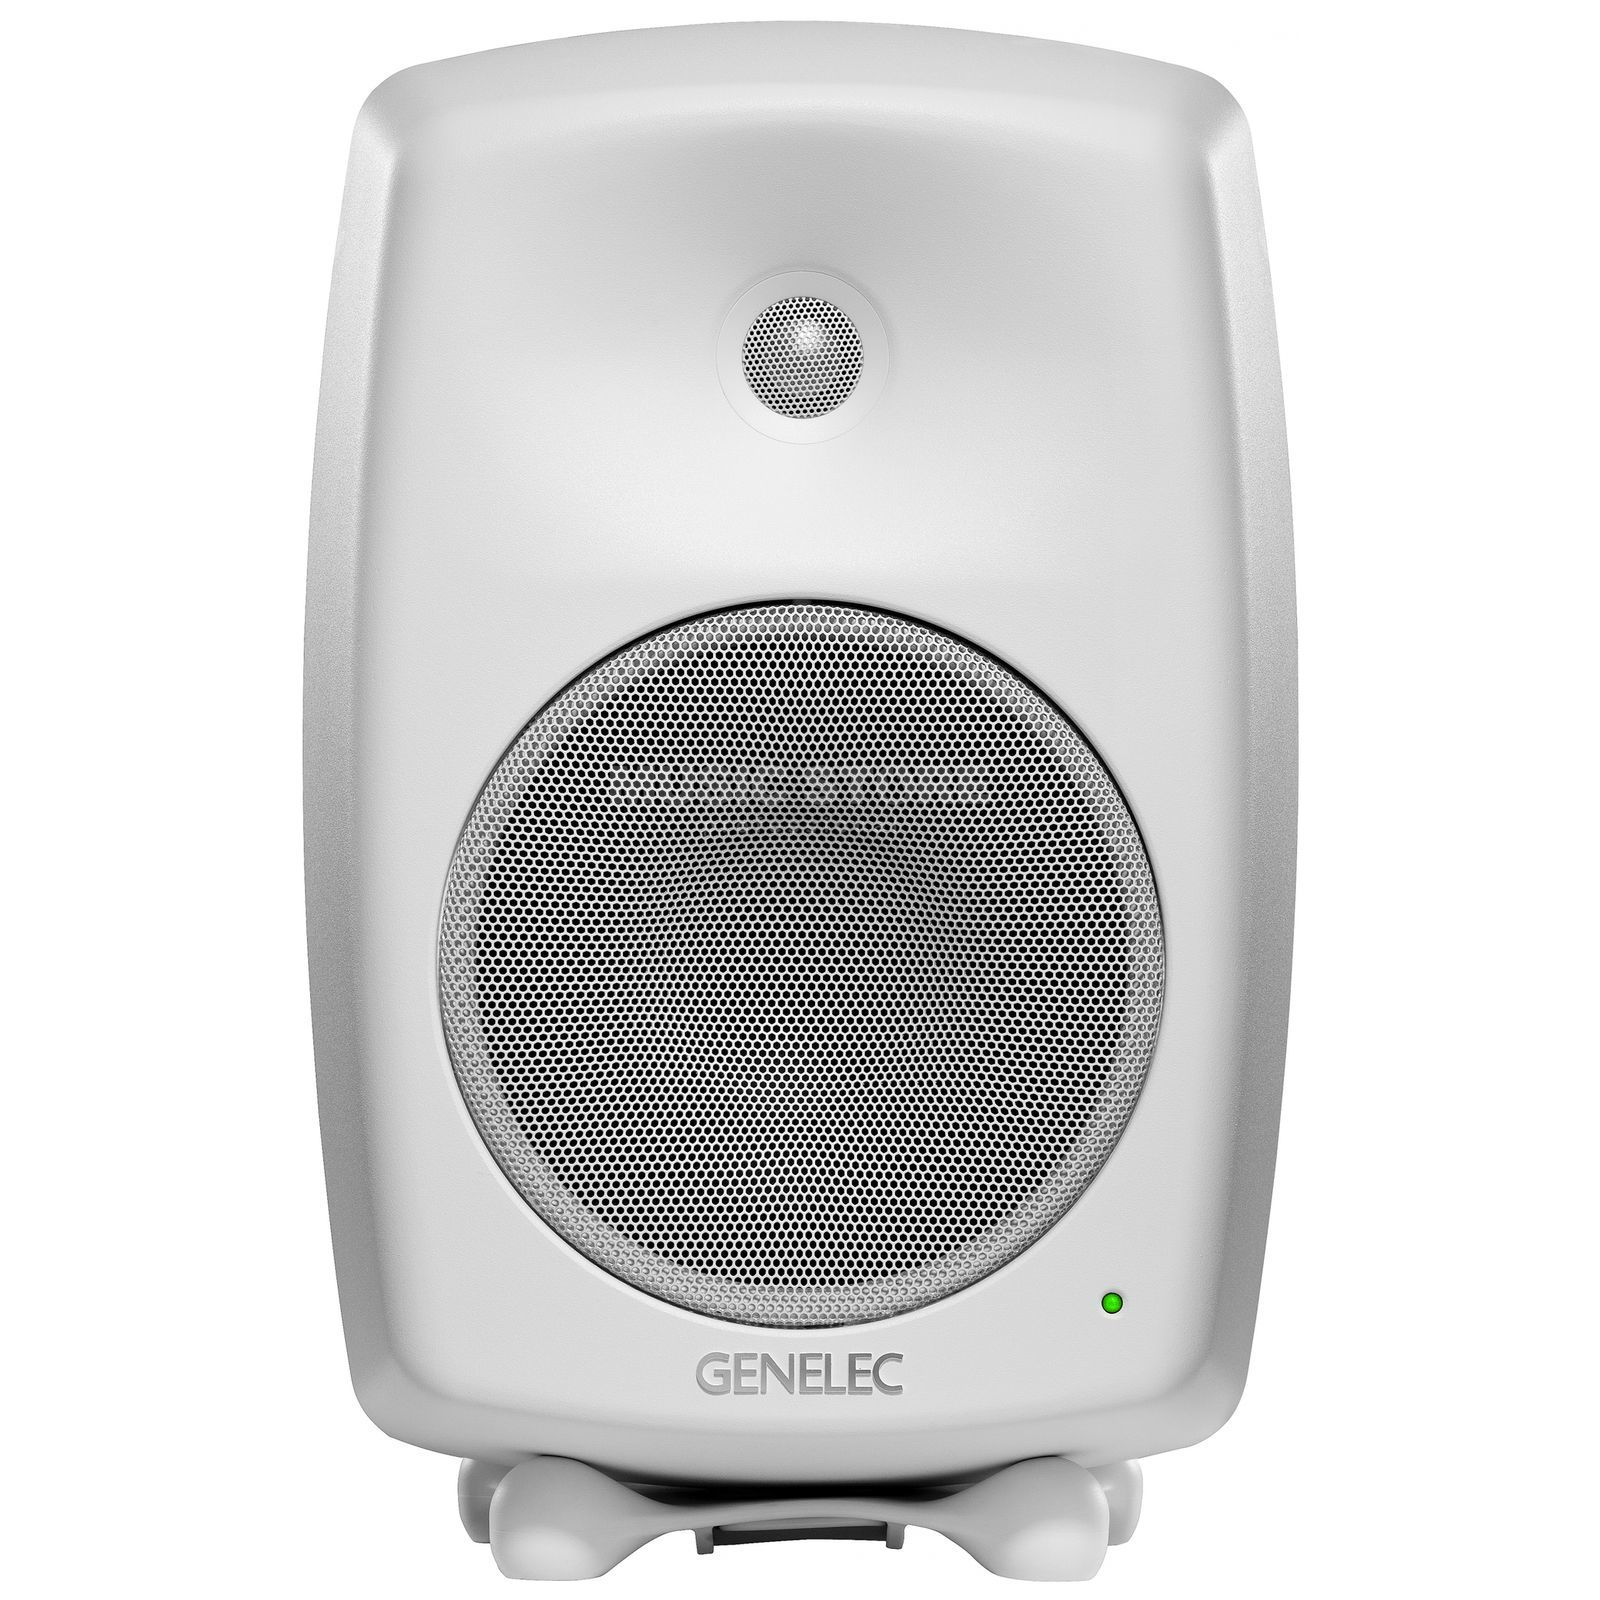 Genelec 8040BWM Compact 2-Way Active Monitor Speaker, White Produktbillede